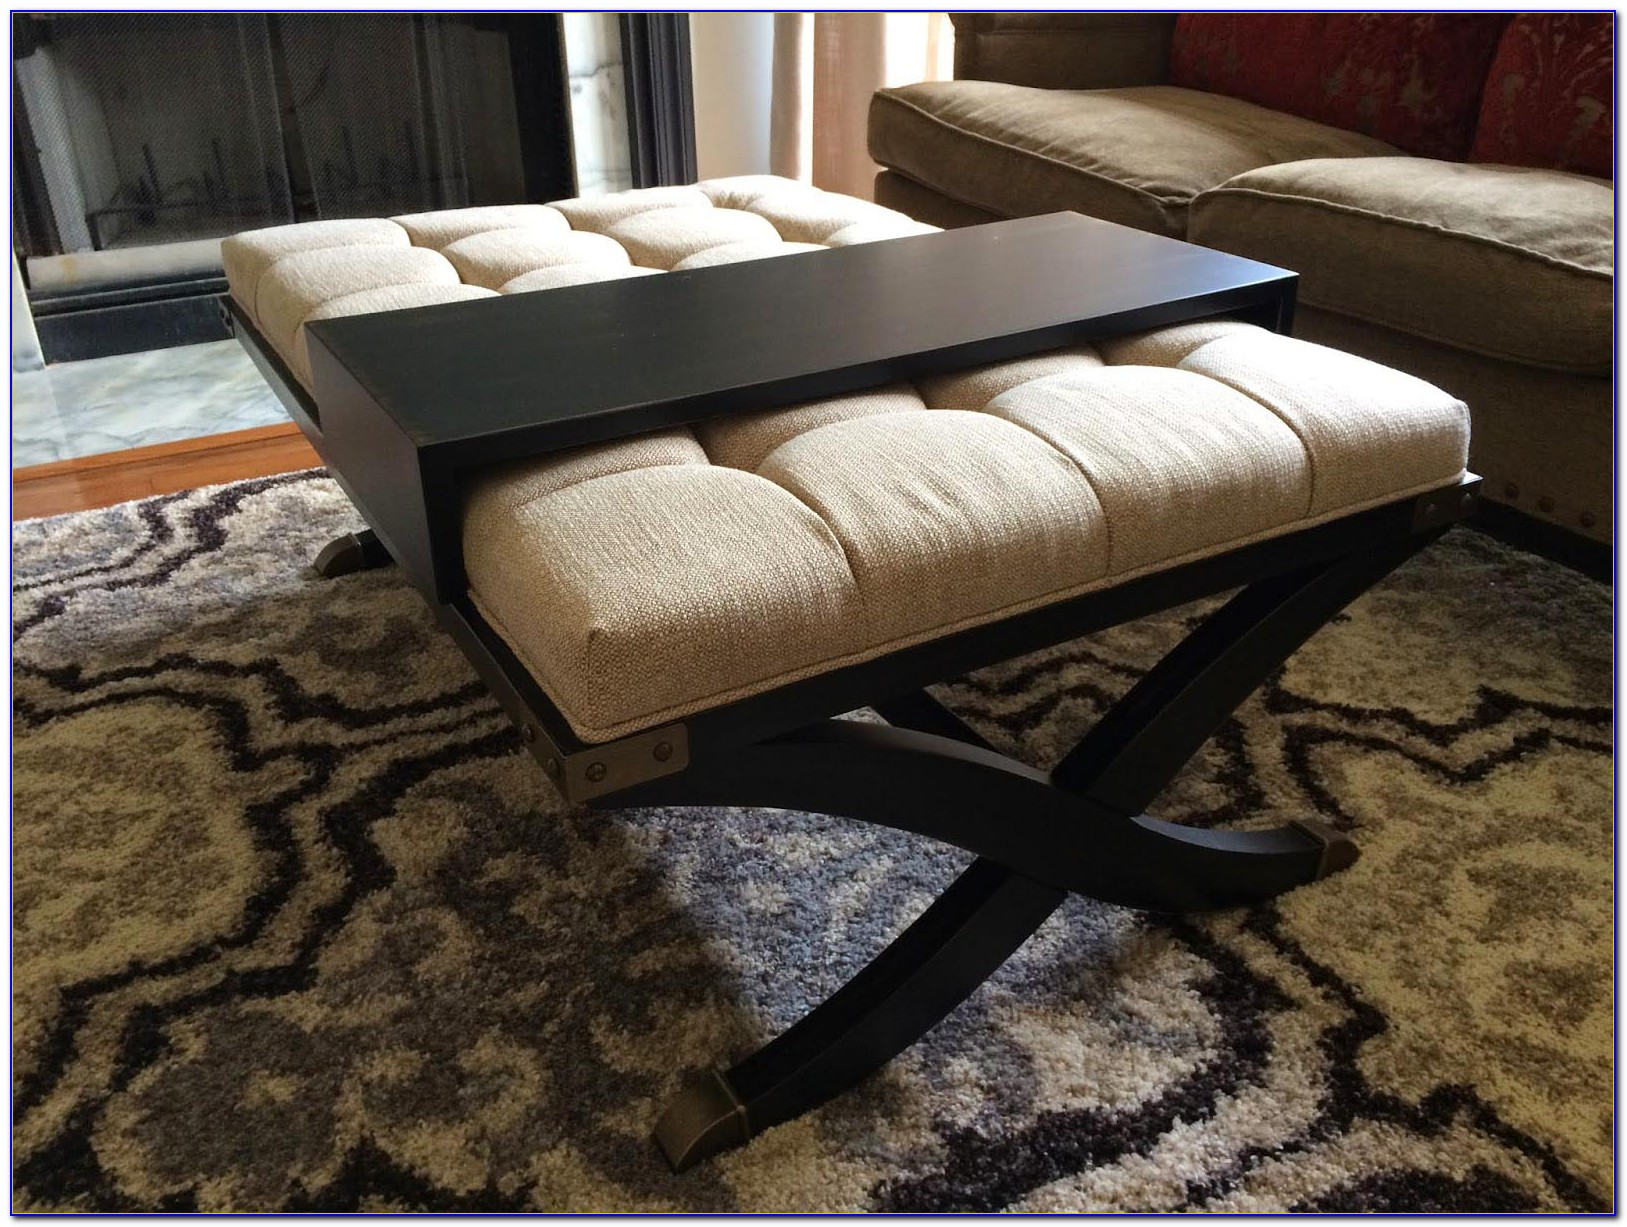 Upholstered Ottoman Bench With Storage